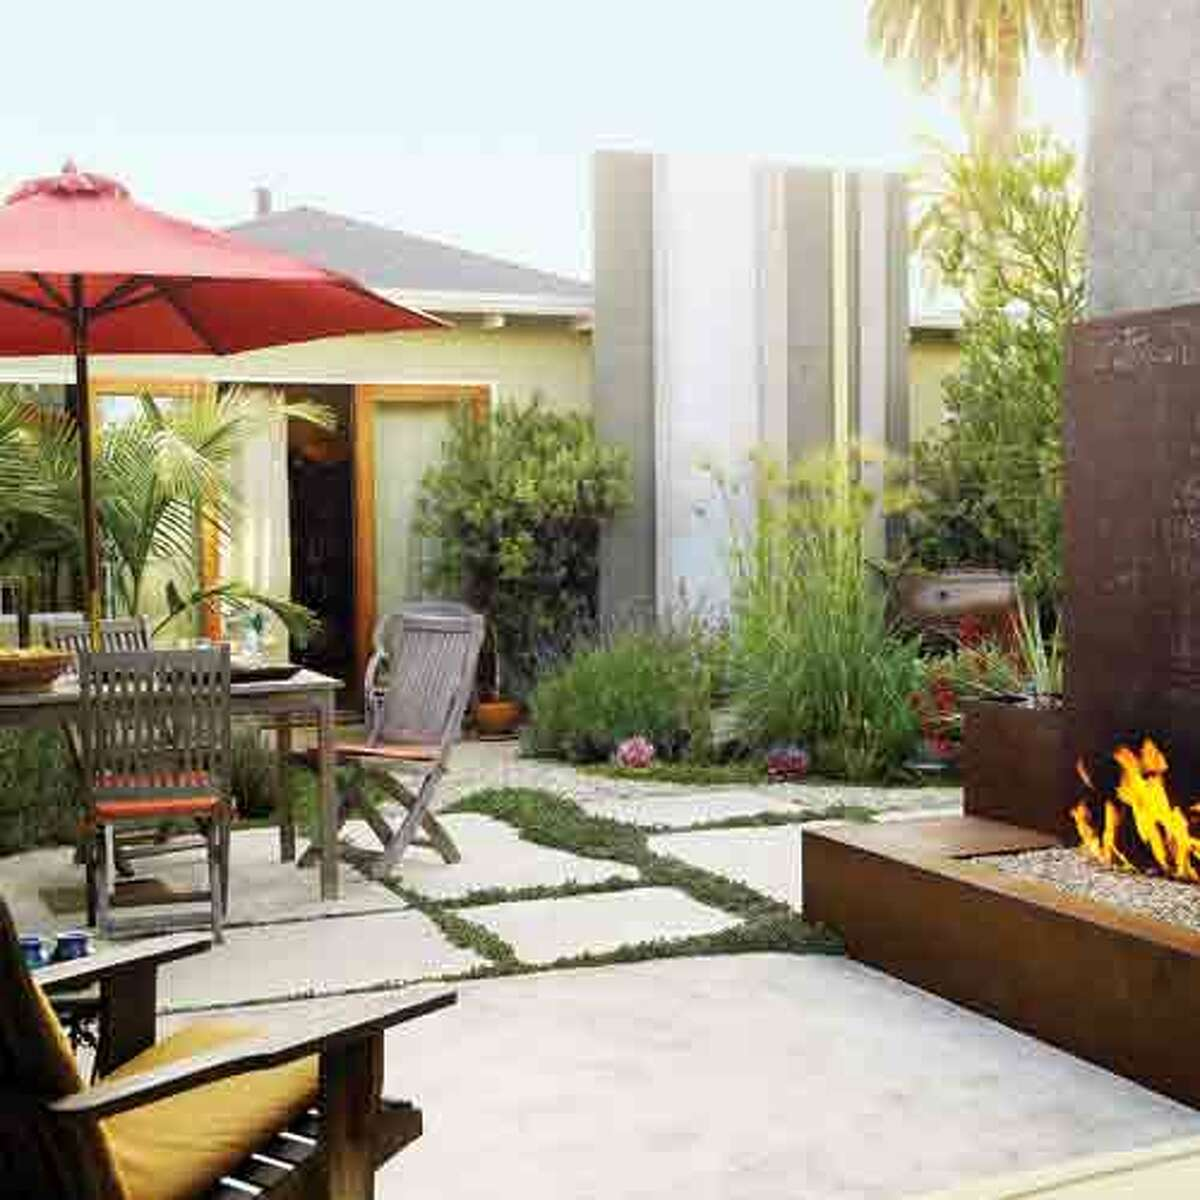 From lawn to private retreat